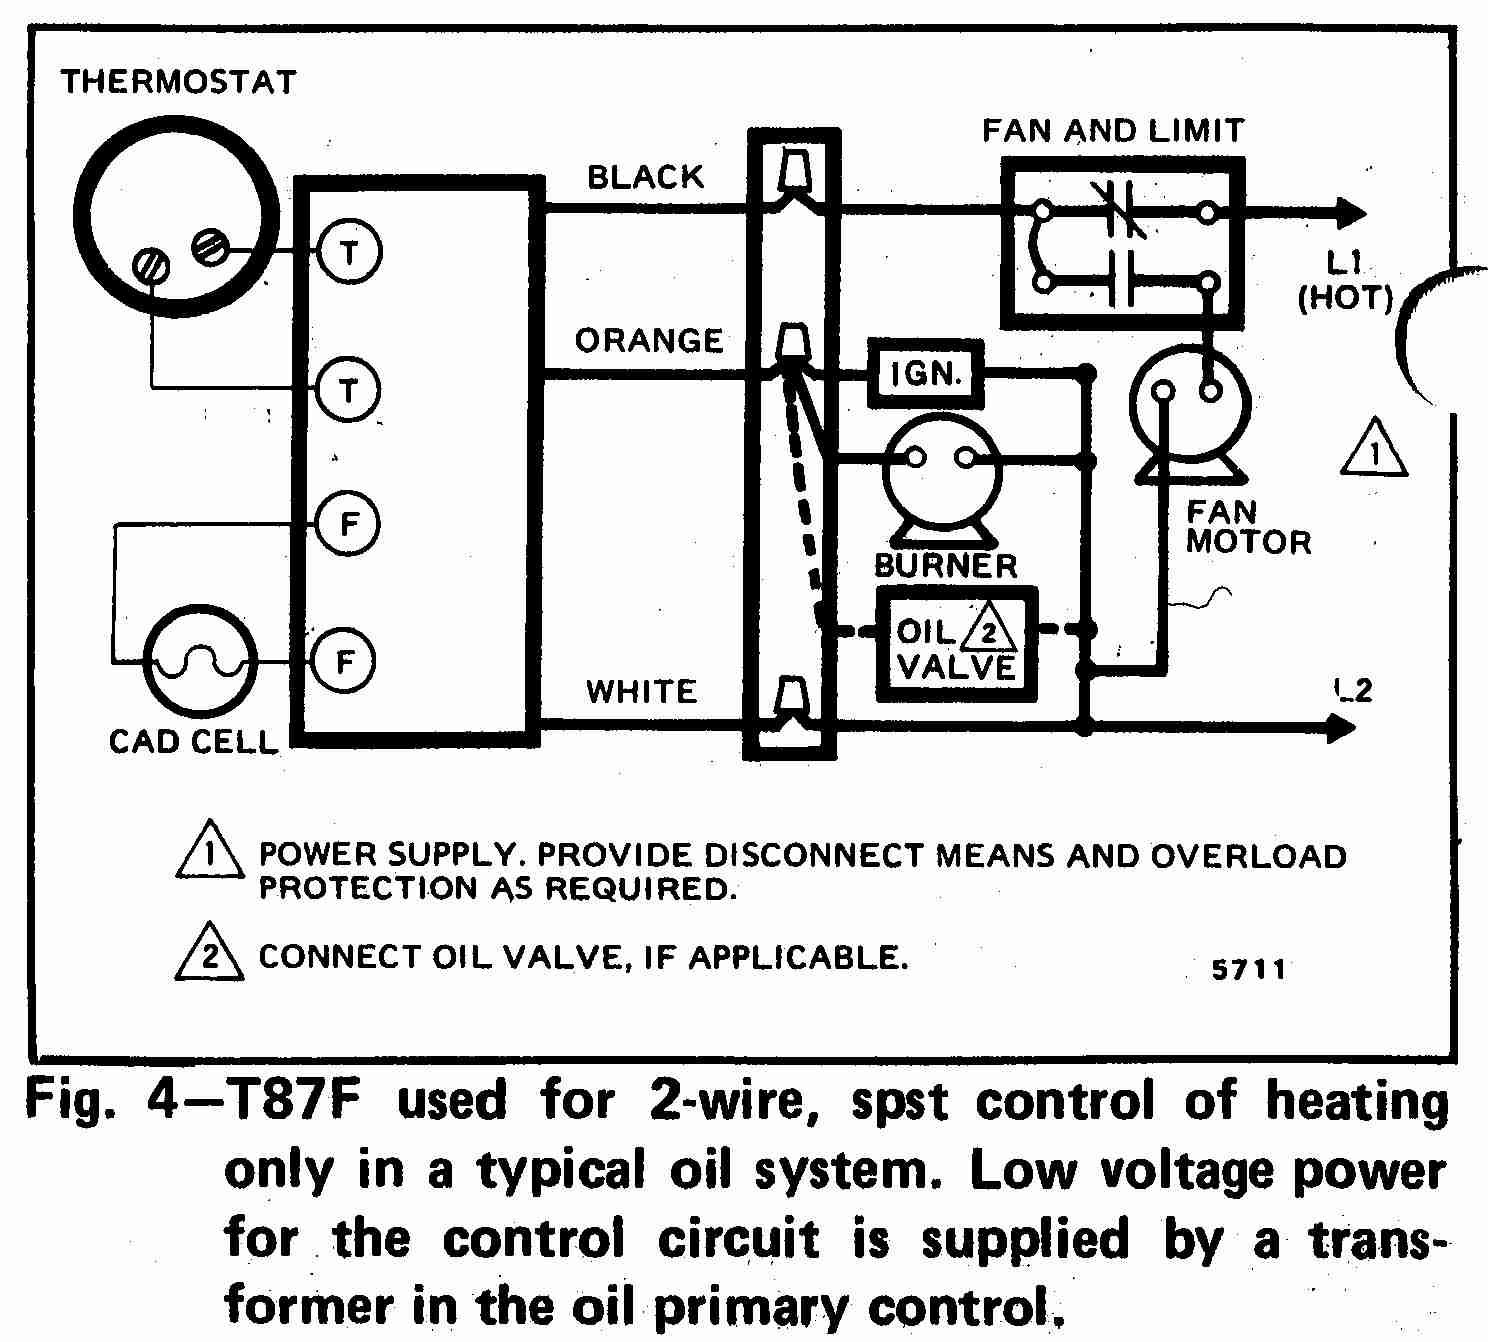 Robertshaw Thermostat Wire Diagram Robertshaw Wiring Diagrams – Robertshaw Thermostat Wiring Diagram